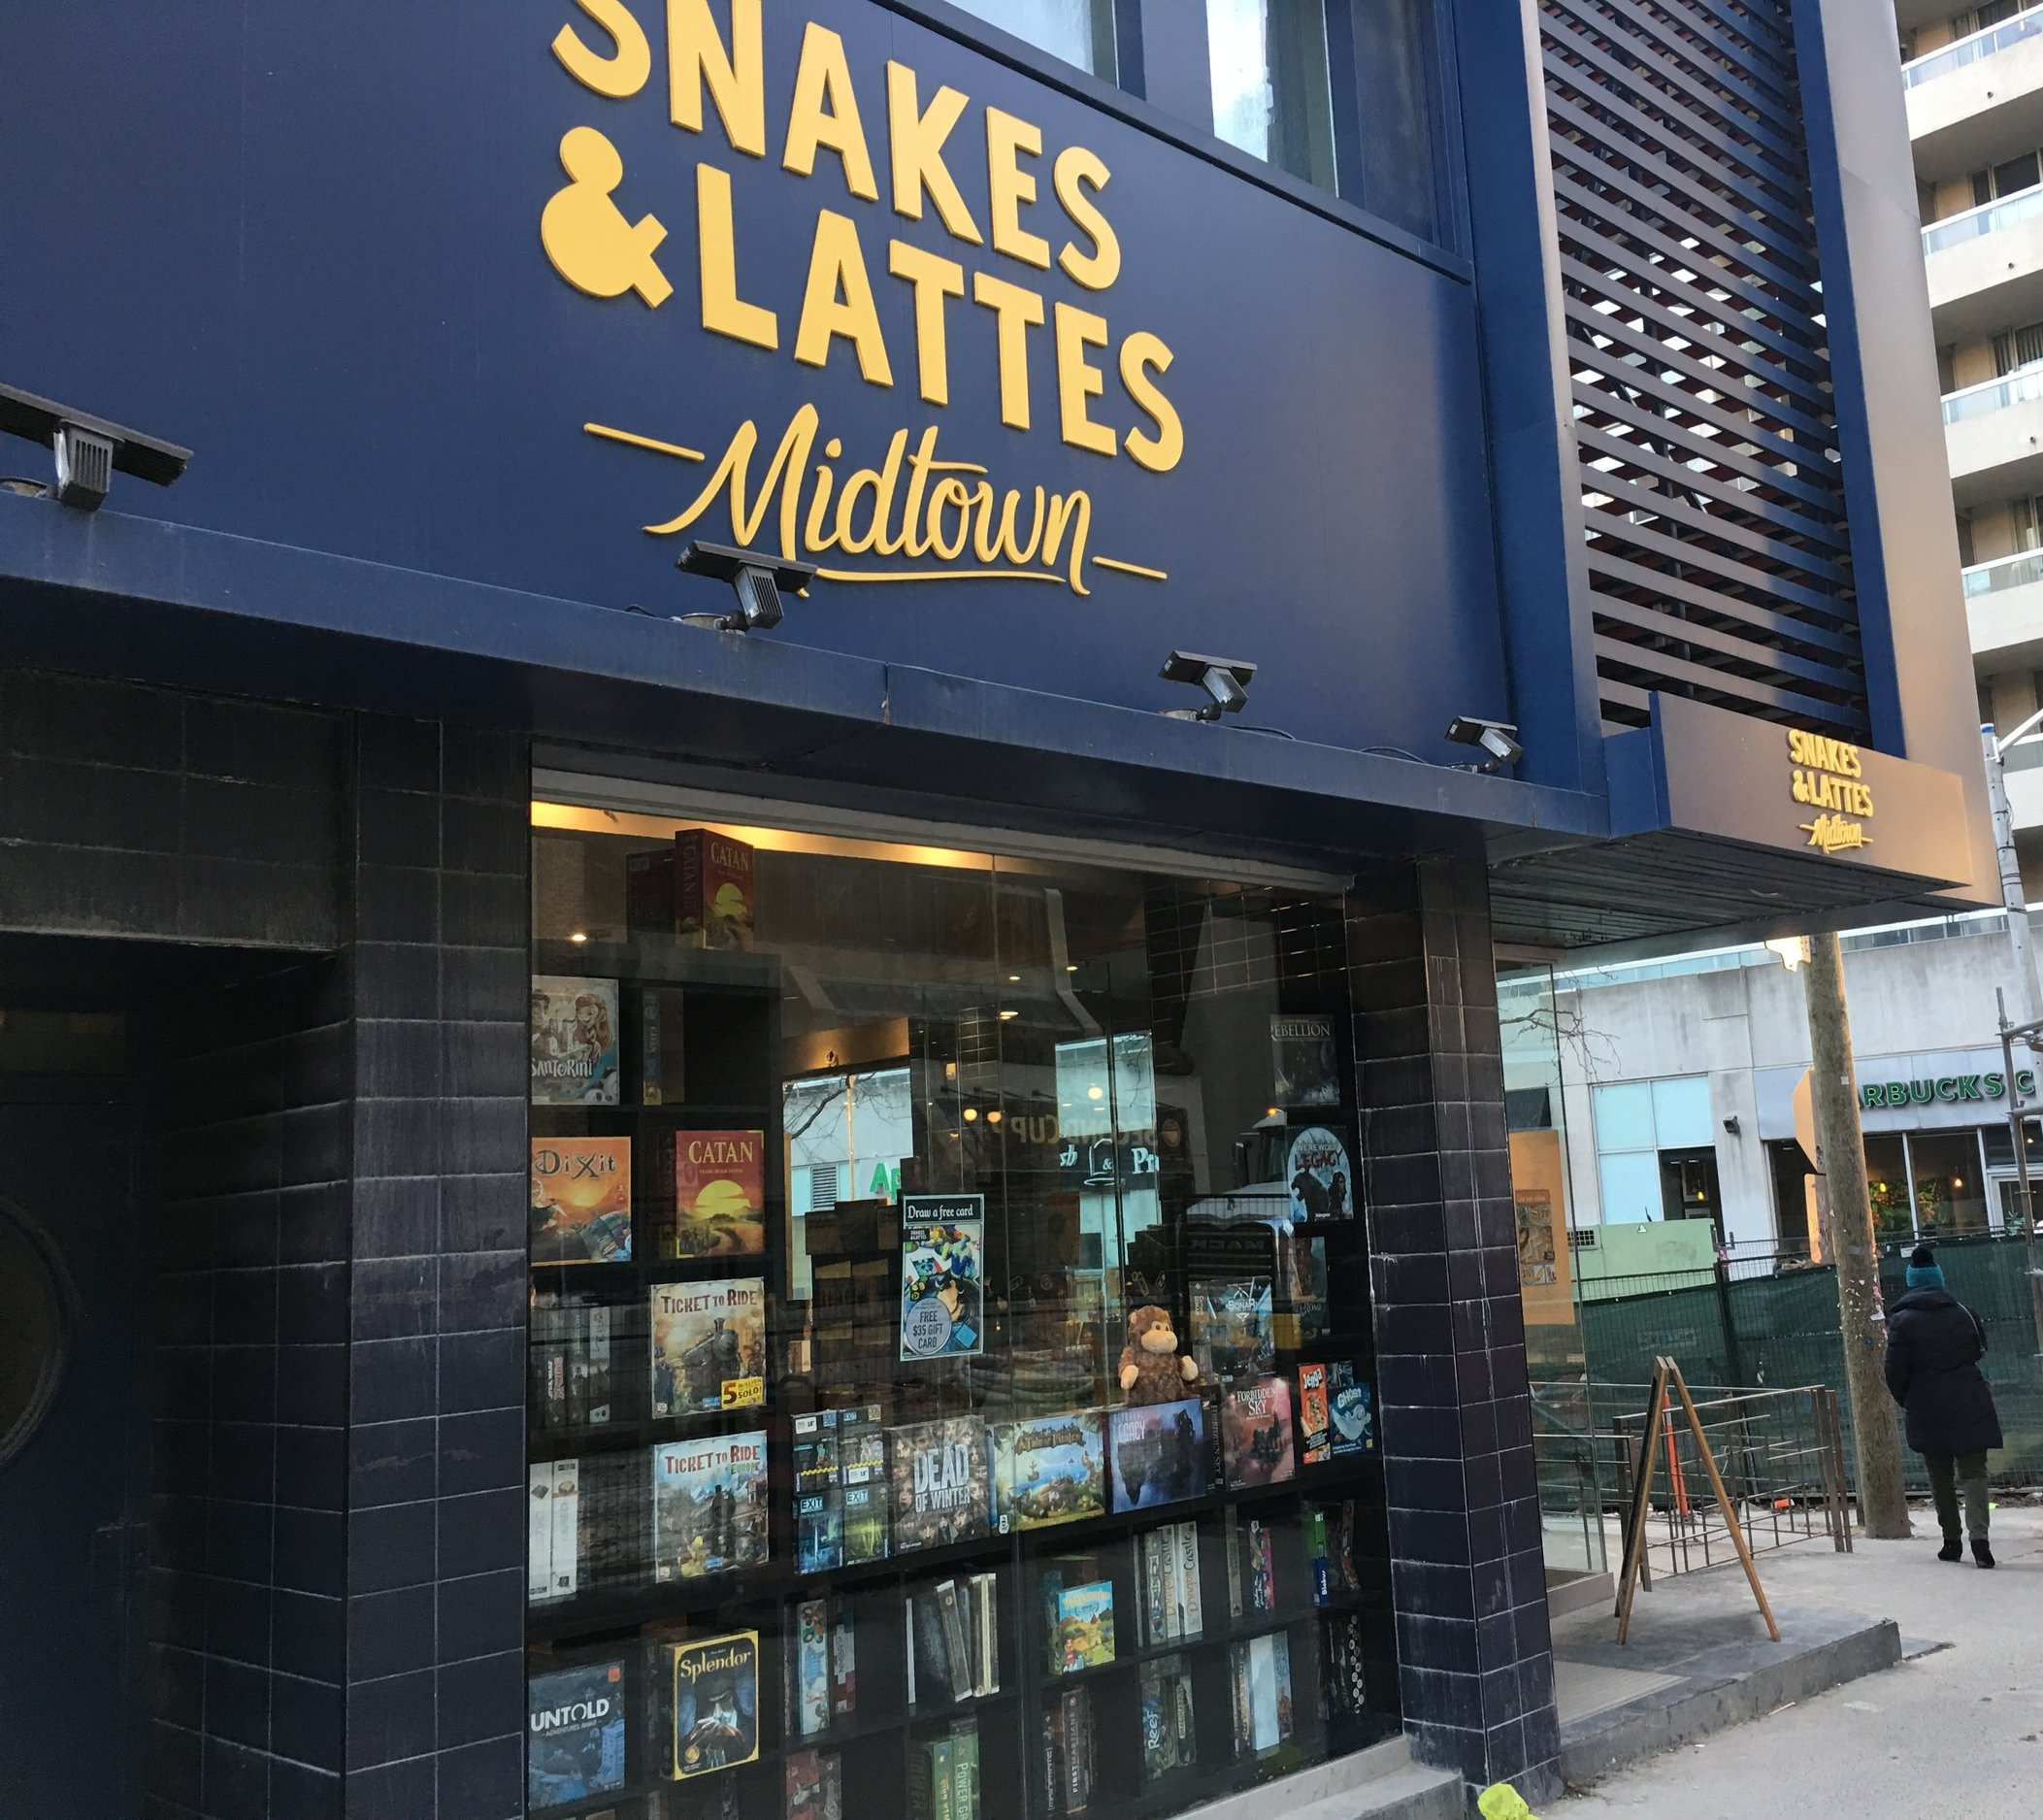 Picture of entrance of Snakes & Lattes with one step leading to door